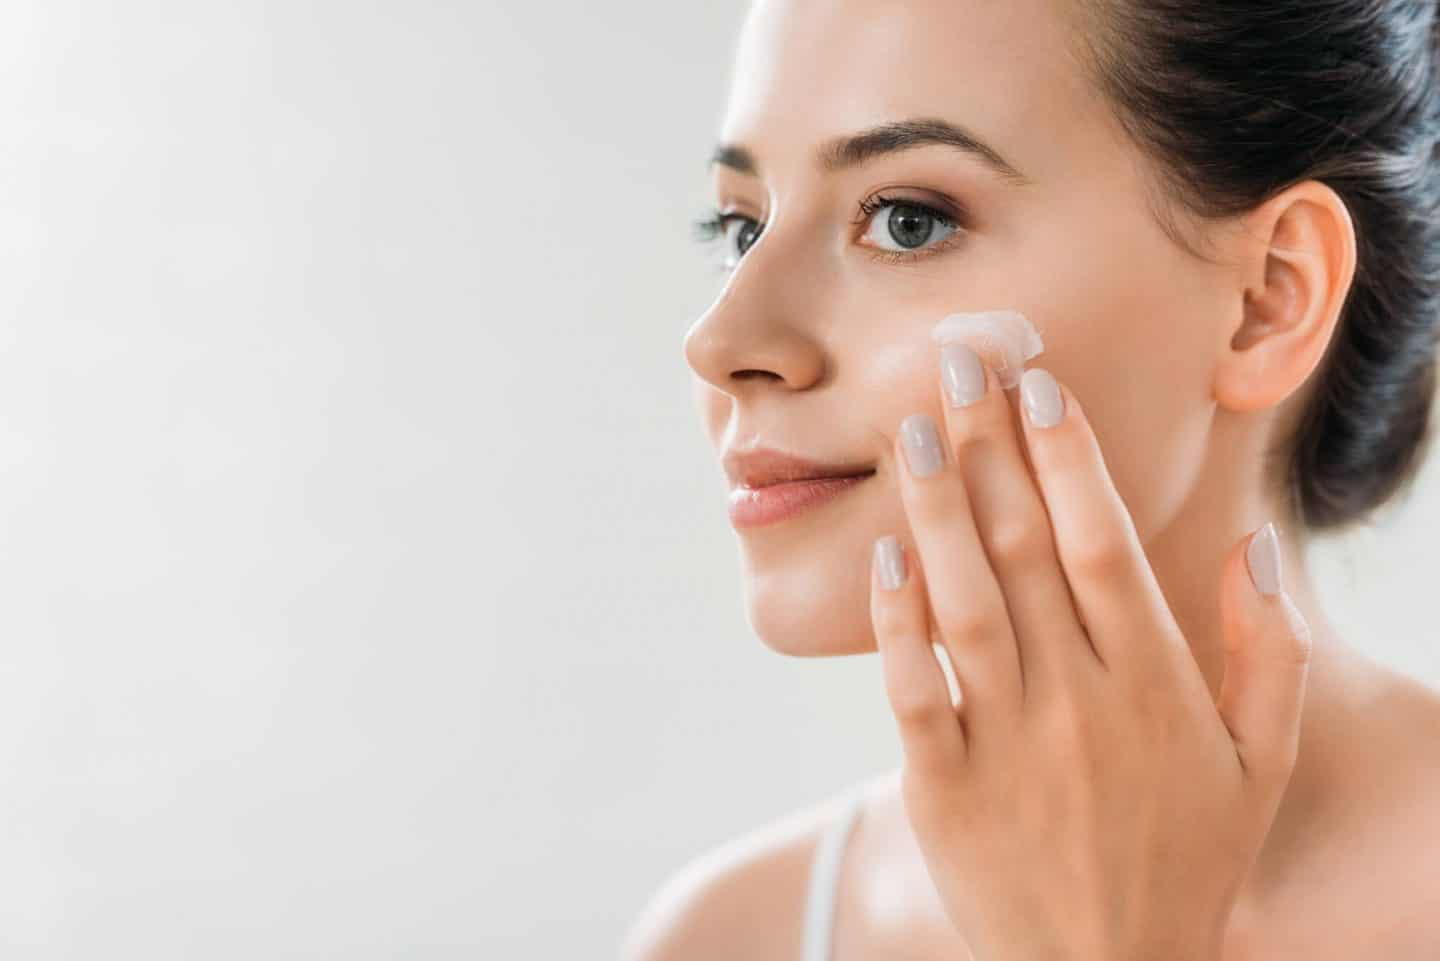 Omega-3 Fatty Acid Supplements & Moisturizer with SPF for Aging Issues